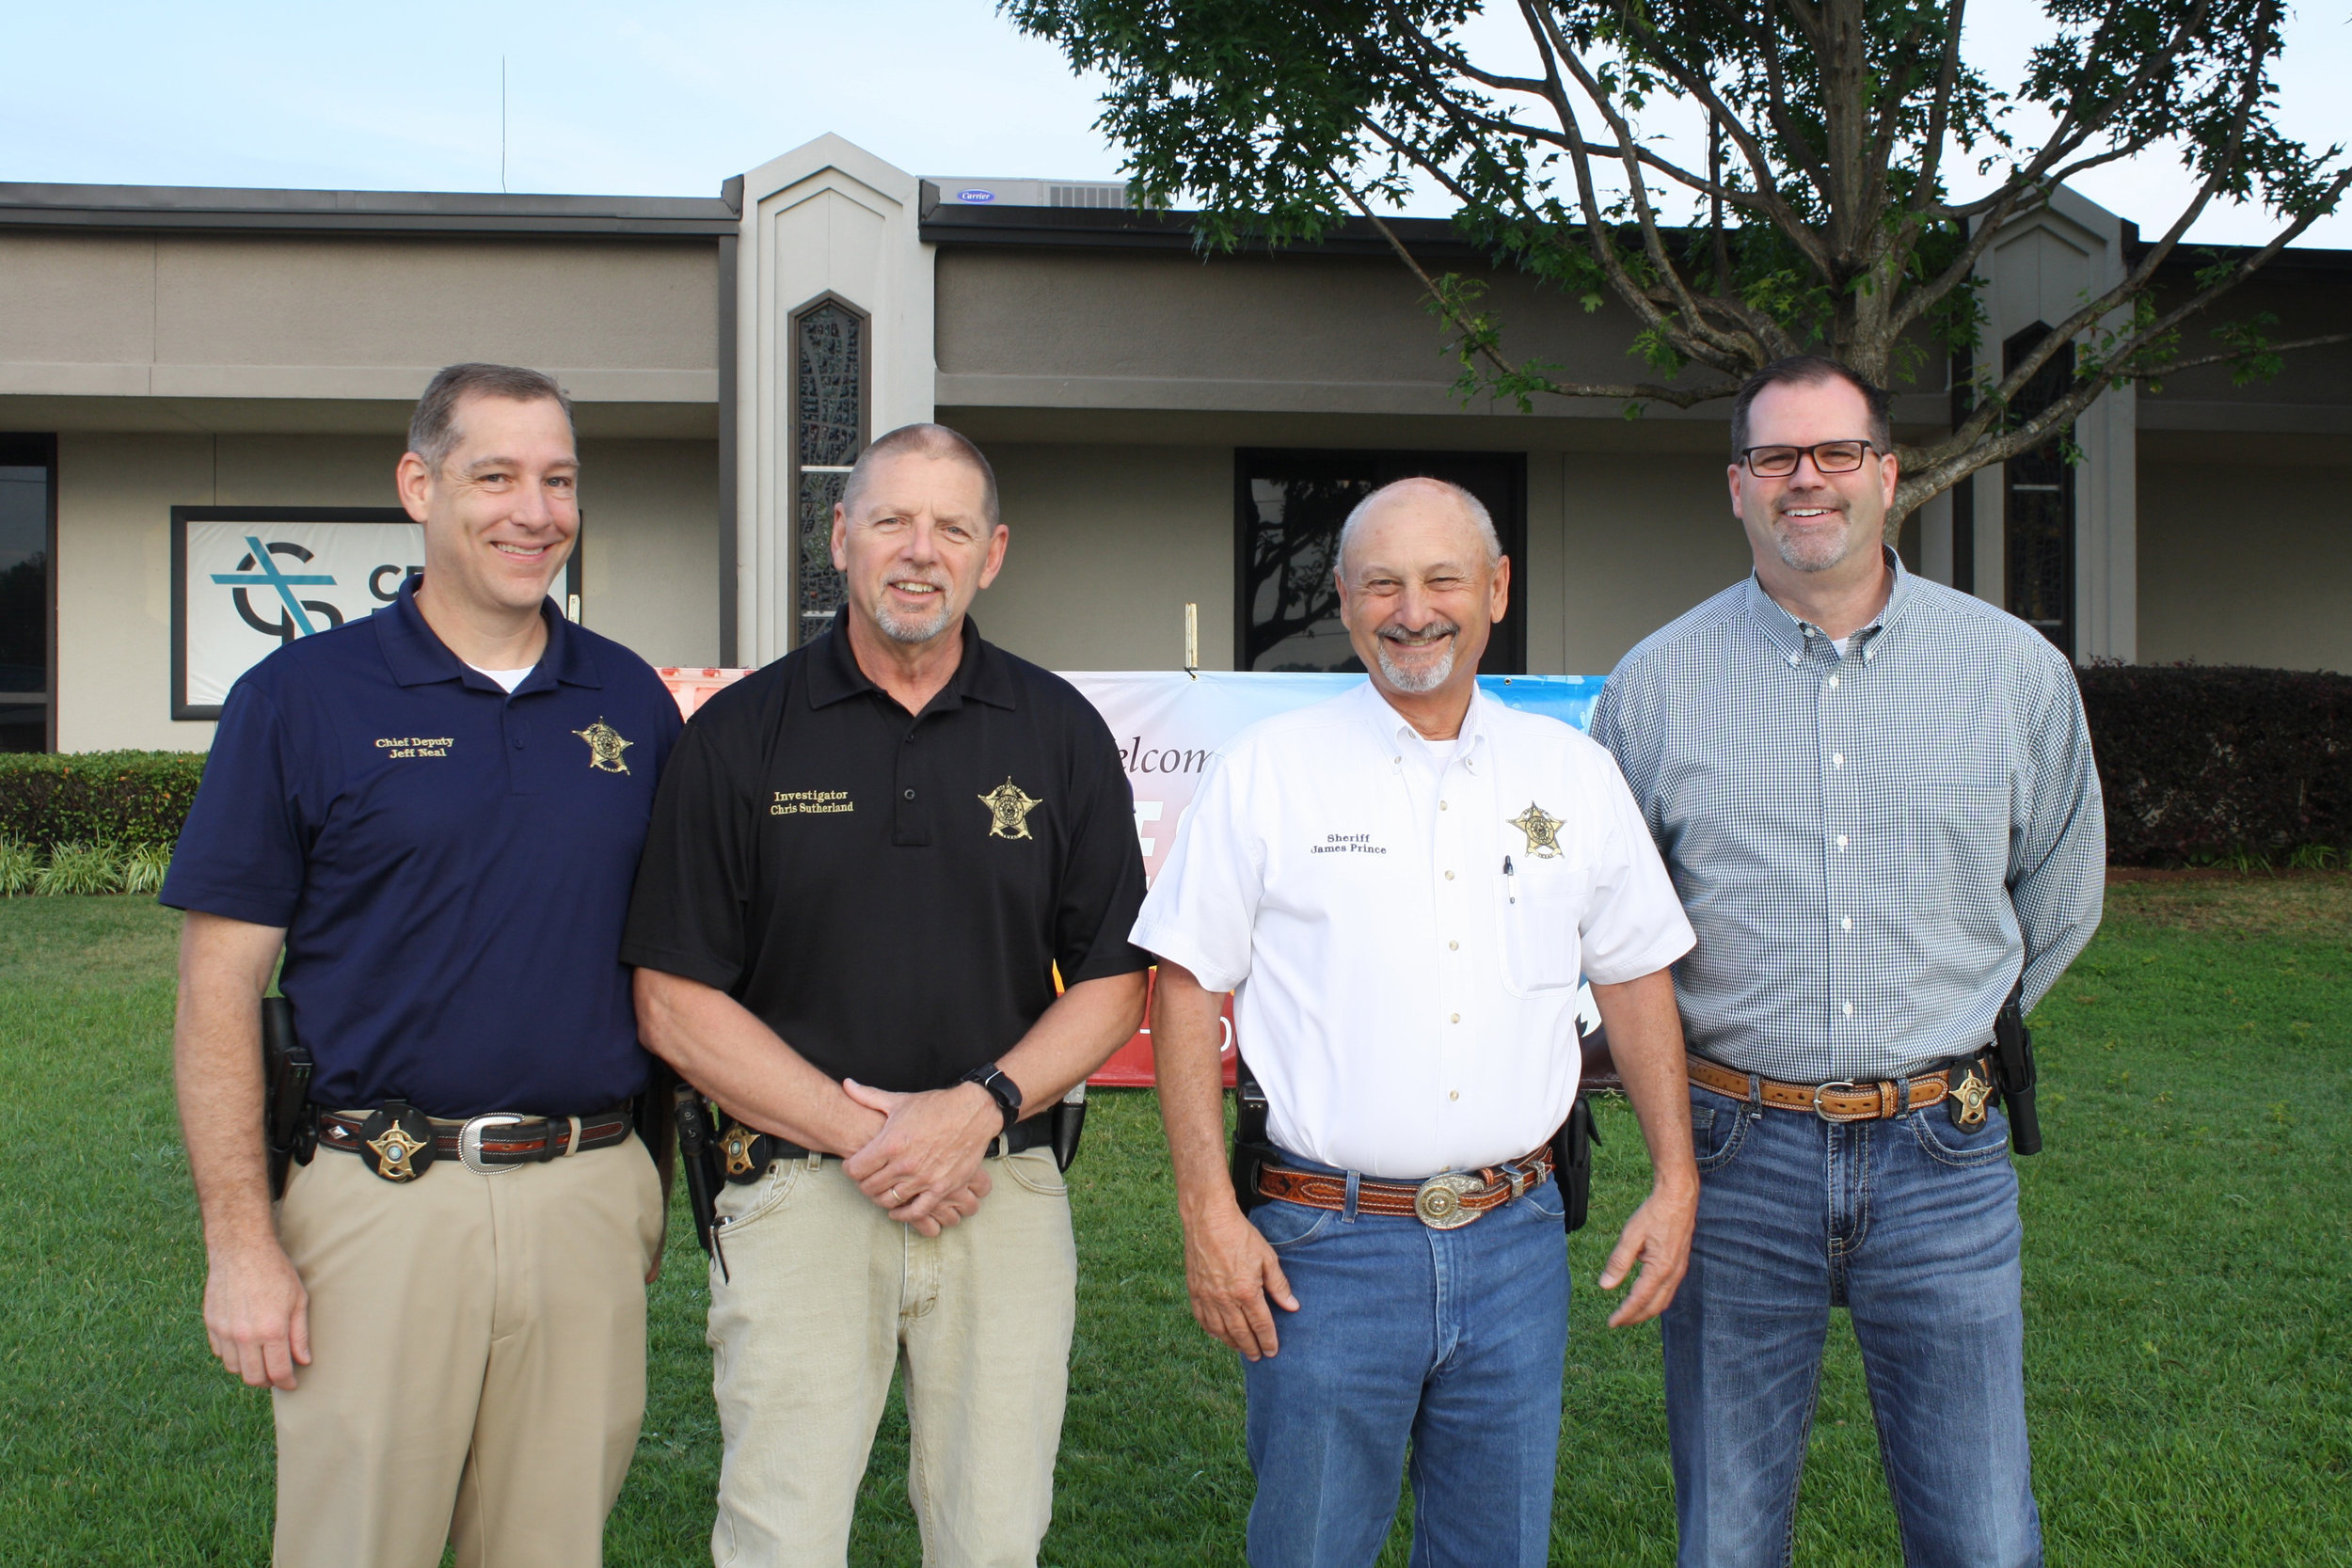 Chief Deputy Jeff Neal, Investigator Chris Sutherland, Sheriff James Prince and Captain Robby McCarver